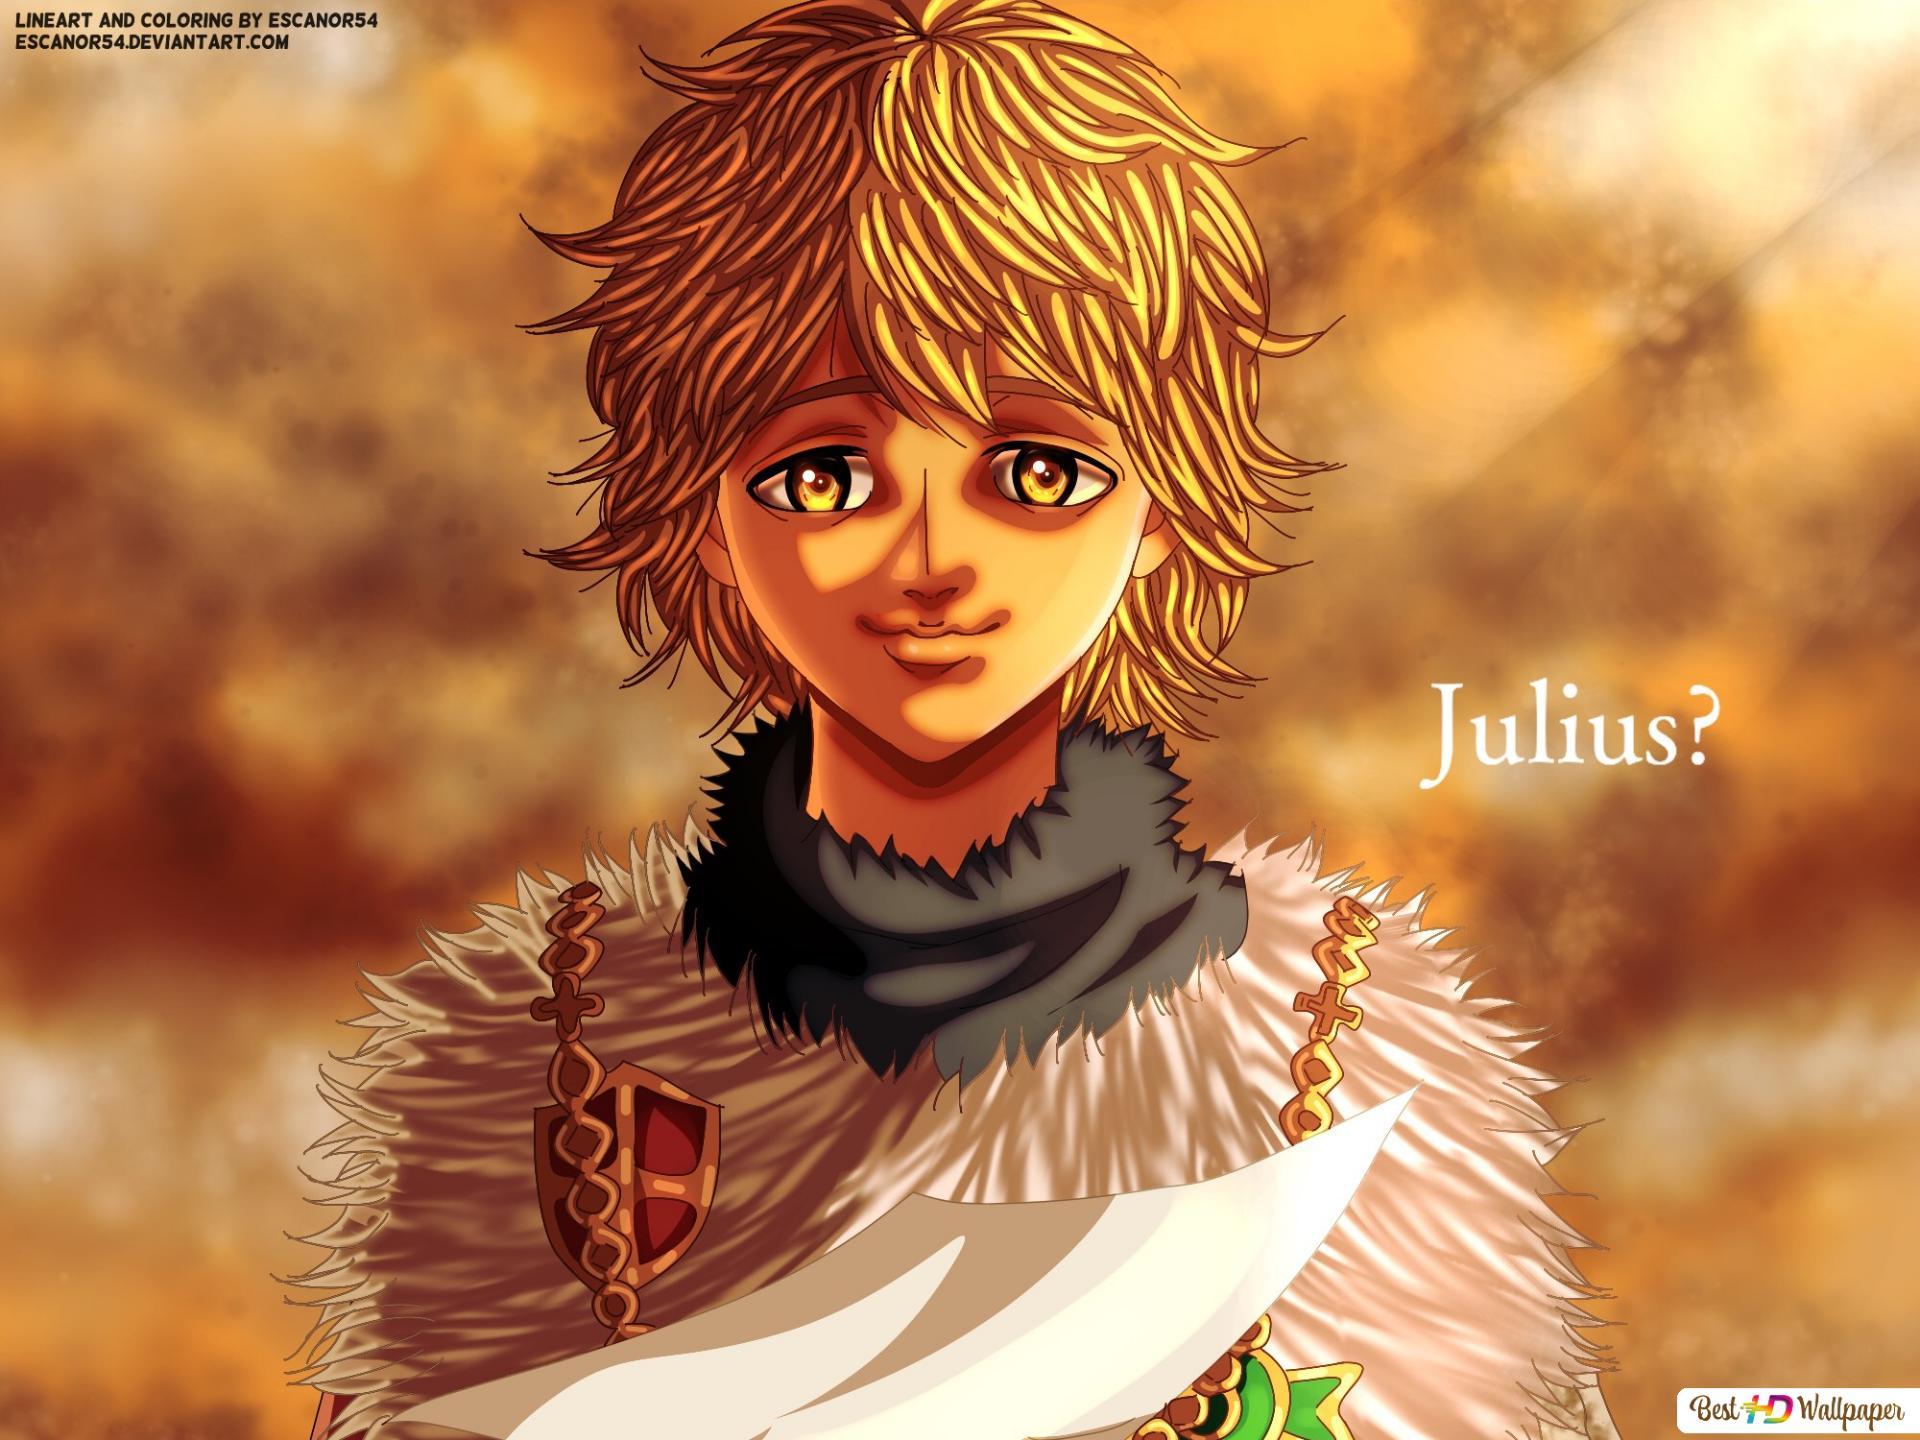 Julius Novachrono Black Clover Hd Wallpaper Download Julius novachrono 「ユリウス・ノヴァクロノ yuriusu novakurono」 is the 28th magic emperor of the five leaf clover orange julius coming of age anime my black fan art cosplay manga devil. julius novachrono black clover hd